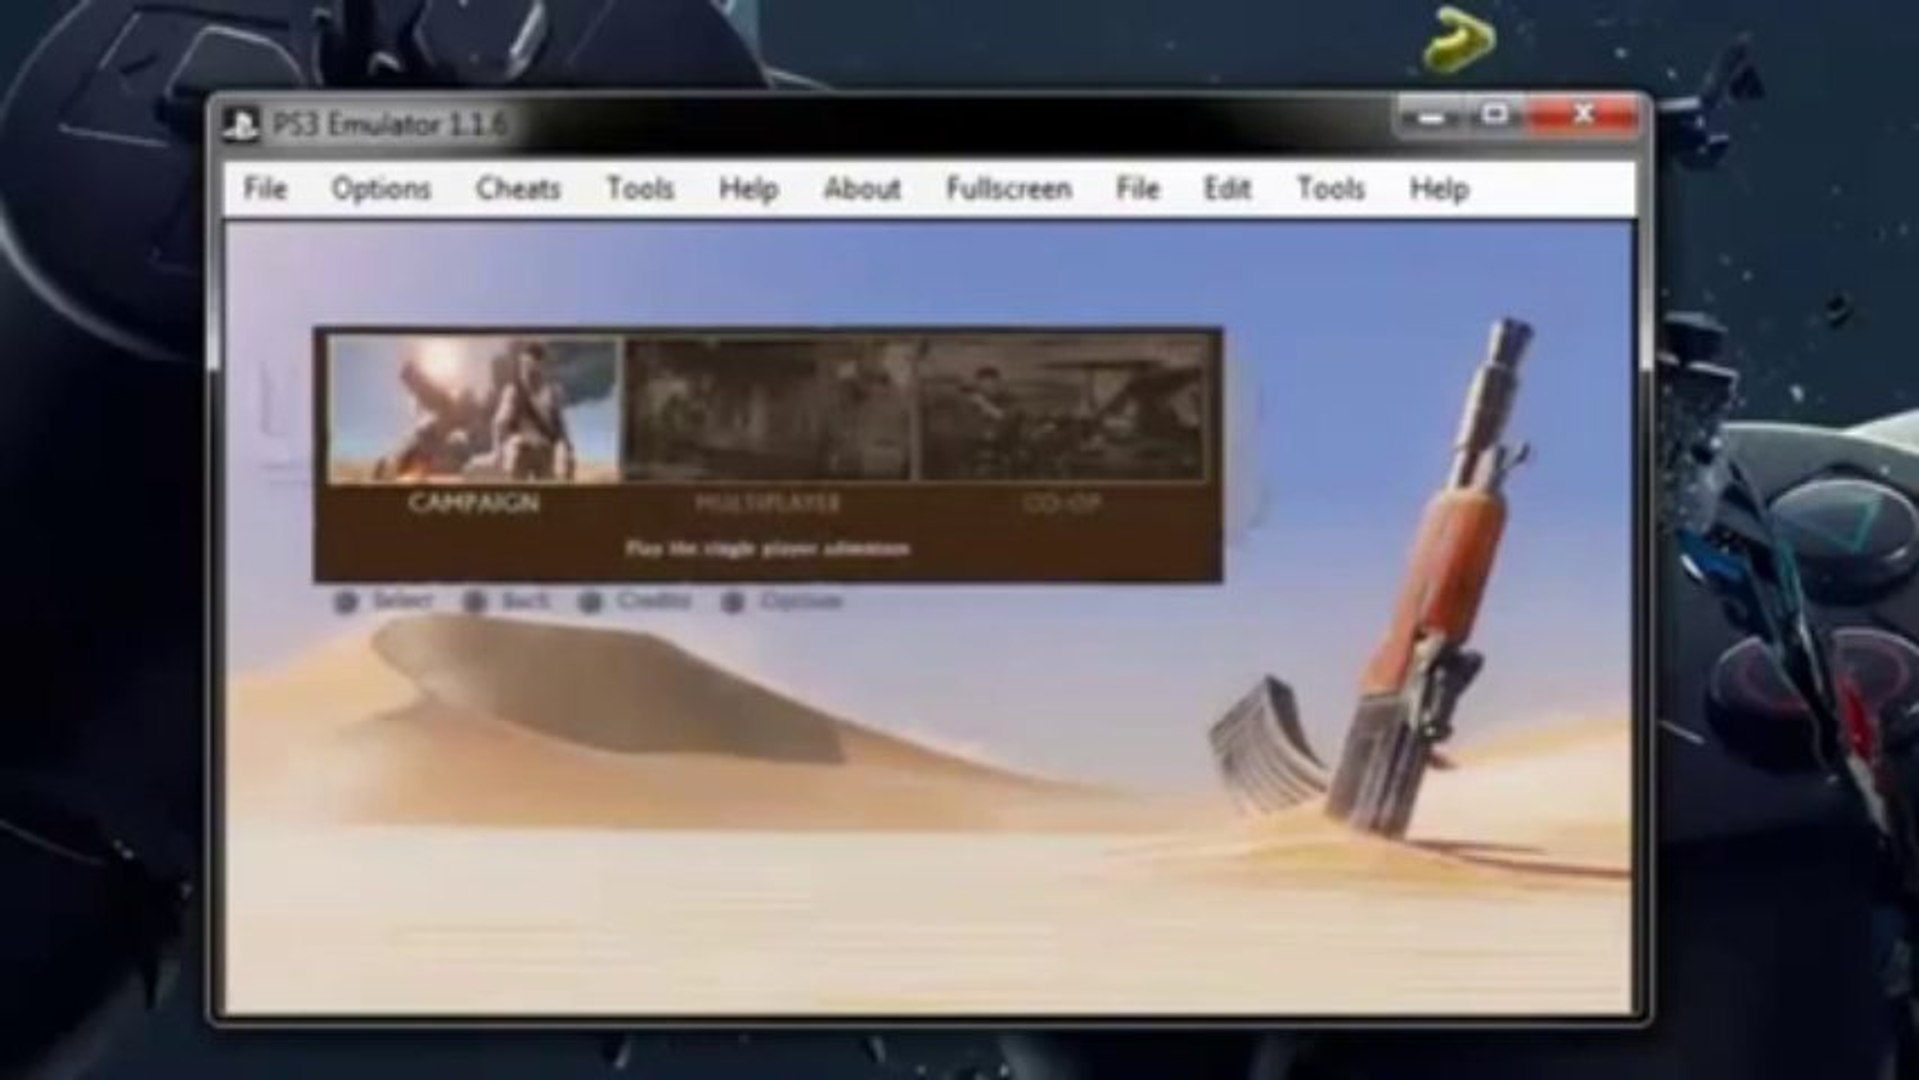 PS3 Emulator For PC Download 2013 for Windows